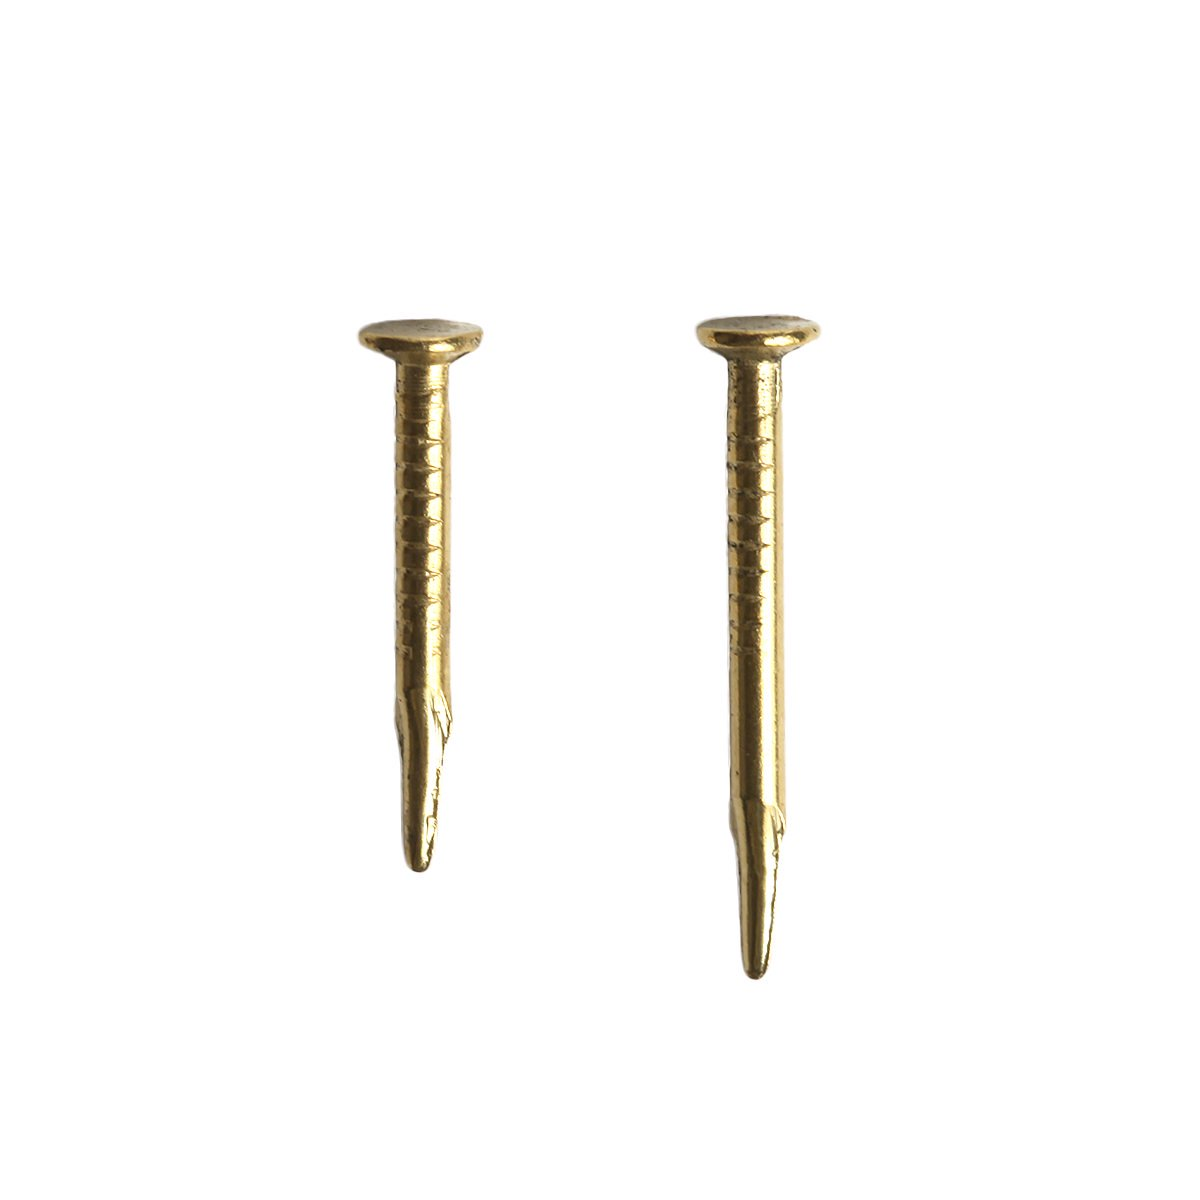 BRASS CLINCH HALF POUND NAILS